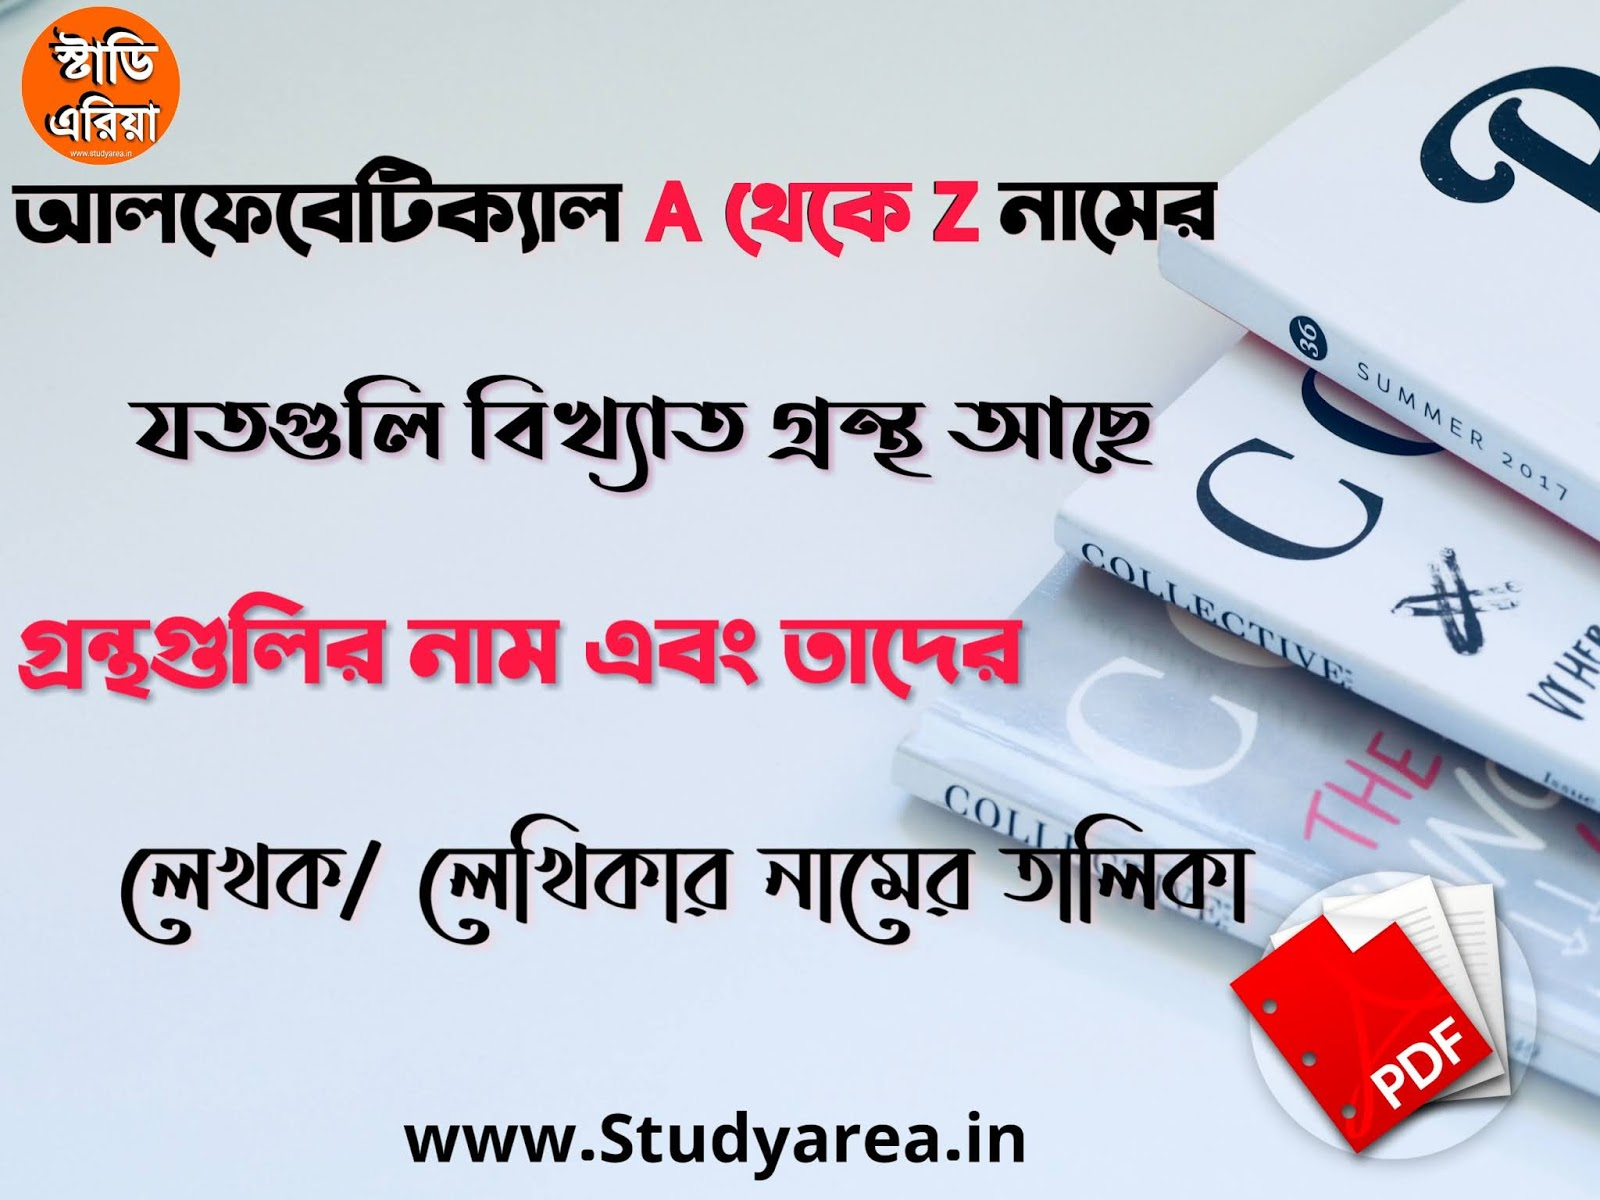 List of famous books and their authors - list -in Bengali PDF